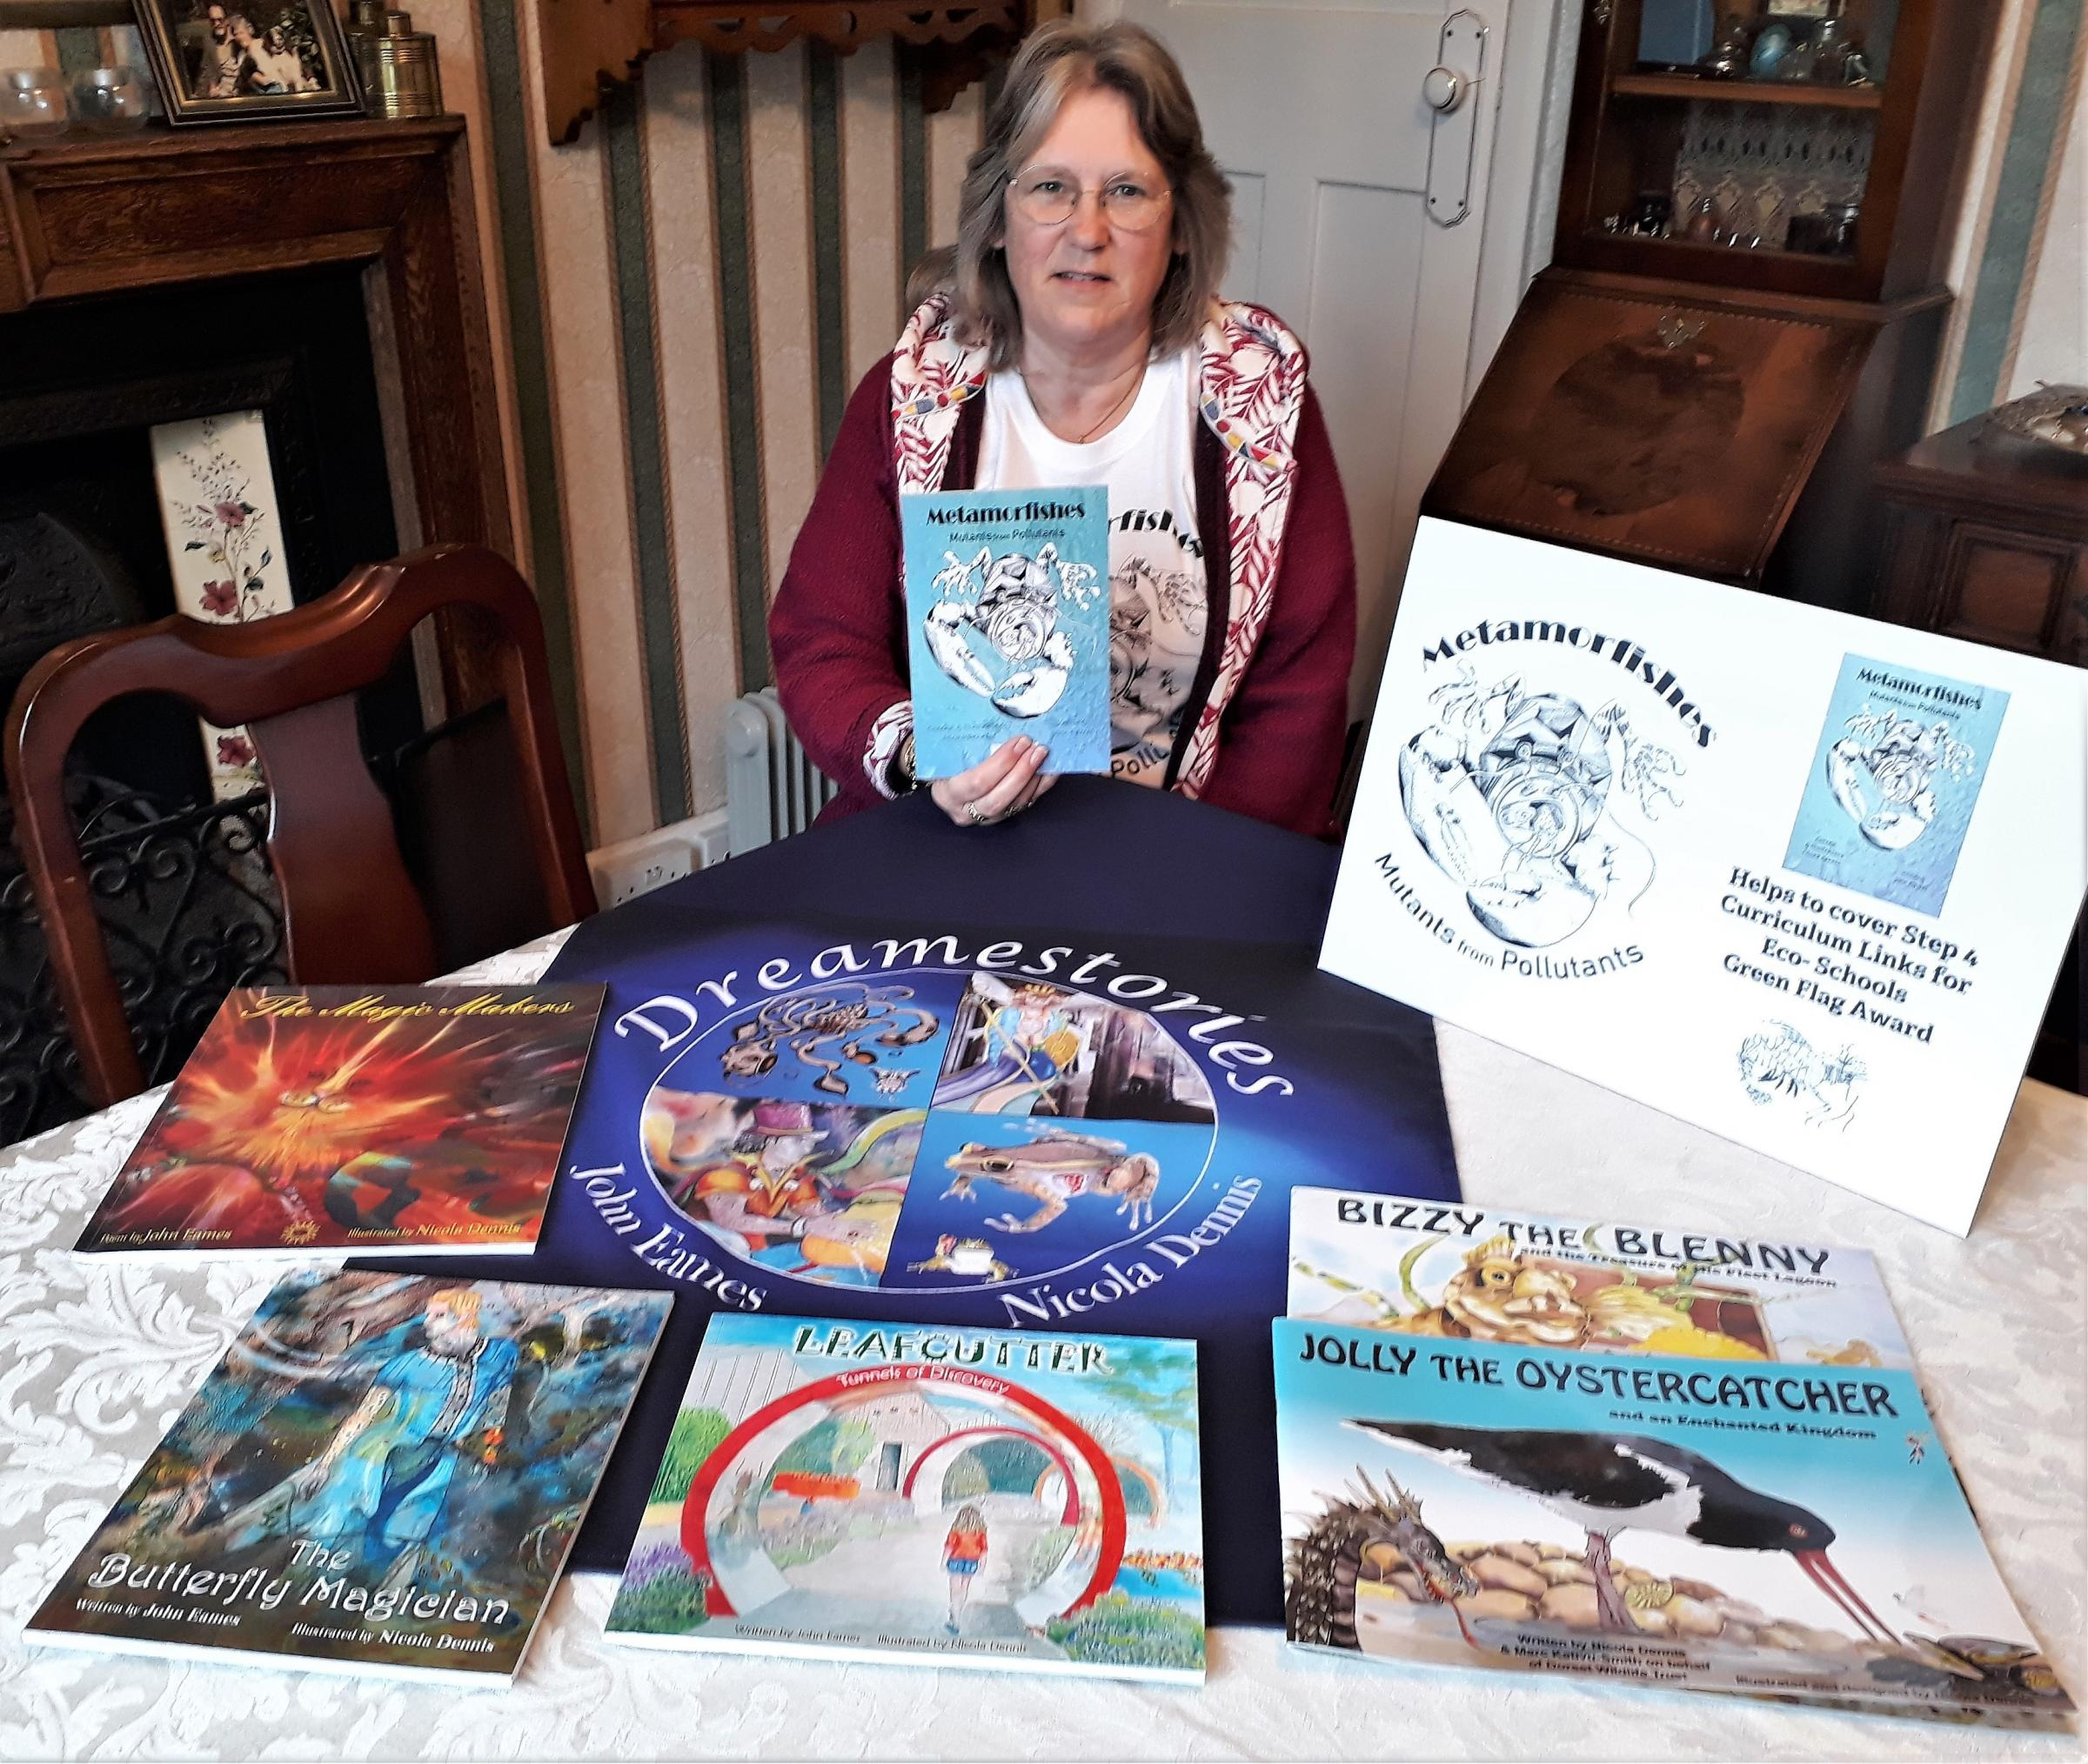 Meet the author aiming to raise awareness of marine pollution in Dorset